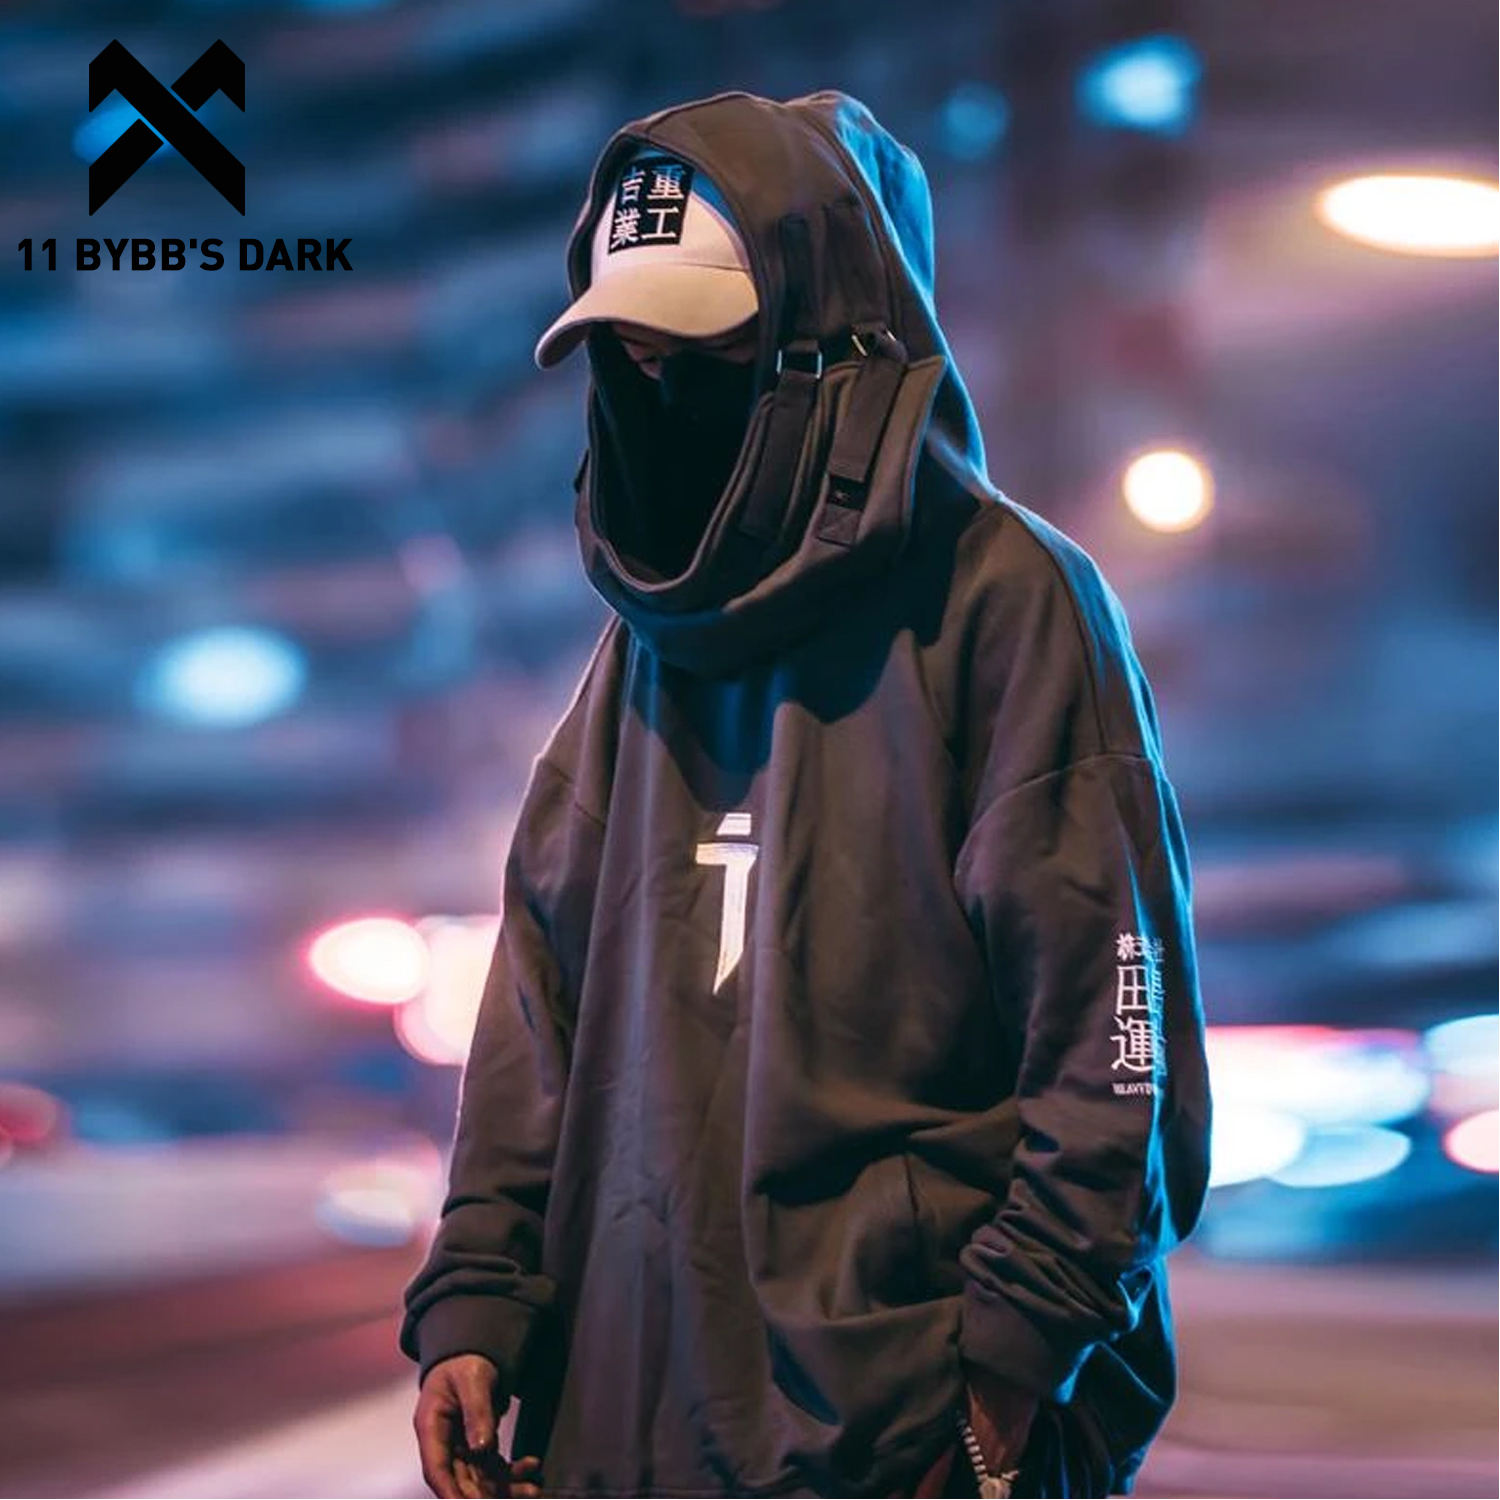 11 BYBB'S DARK Japanese Streetwear Hoodie Men Harajuku Neck Fish Mouth Pullovers Sweatshirts Oversized Hip Hop Hoodies Techwear 1